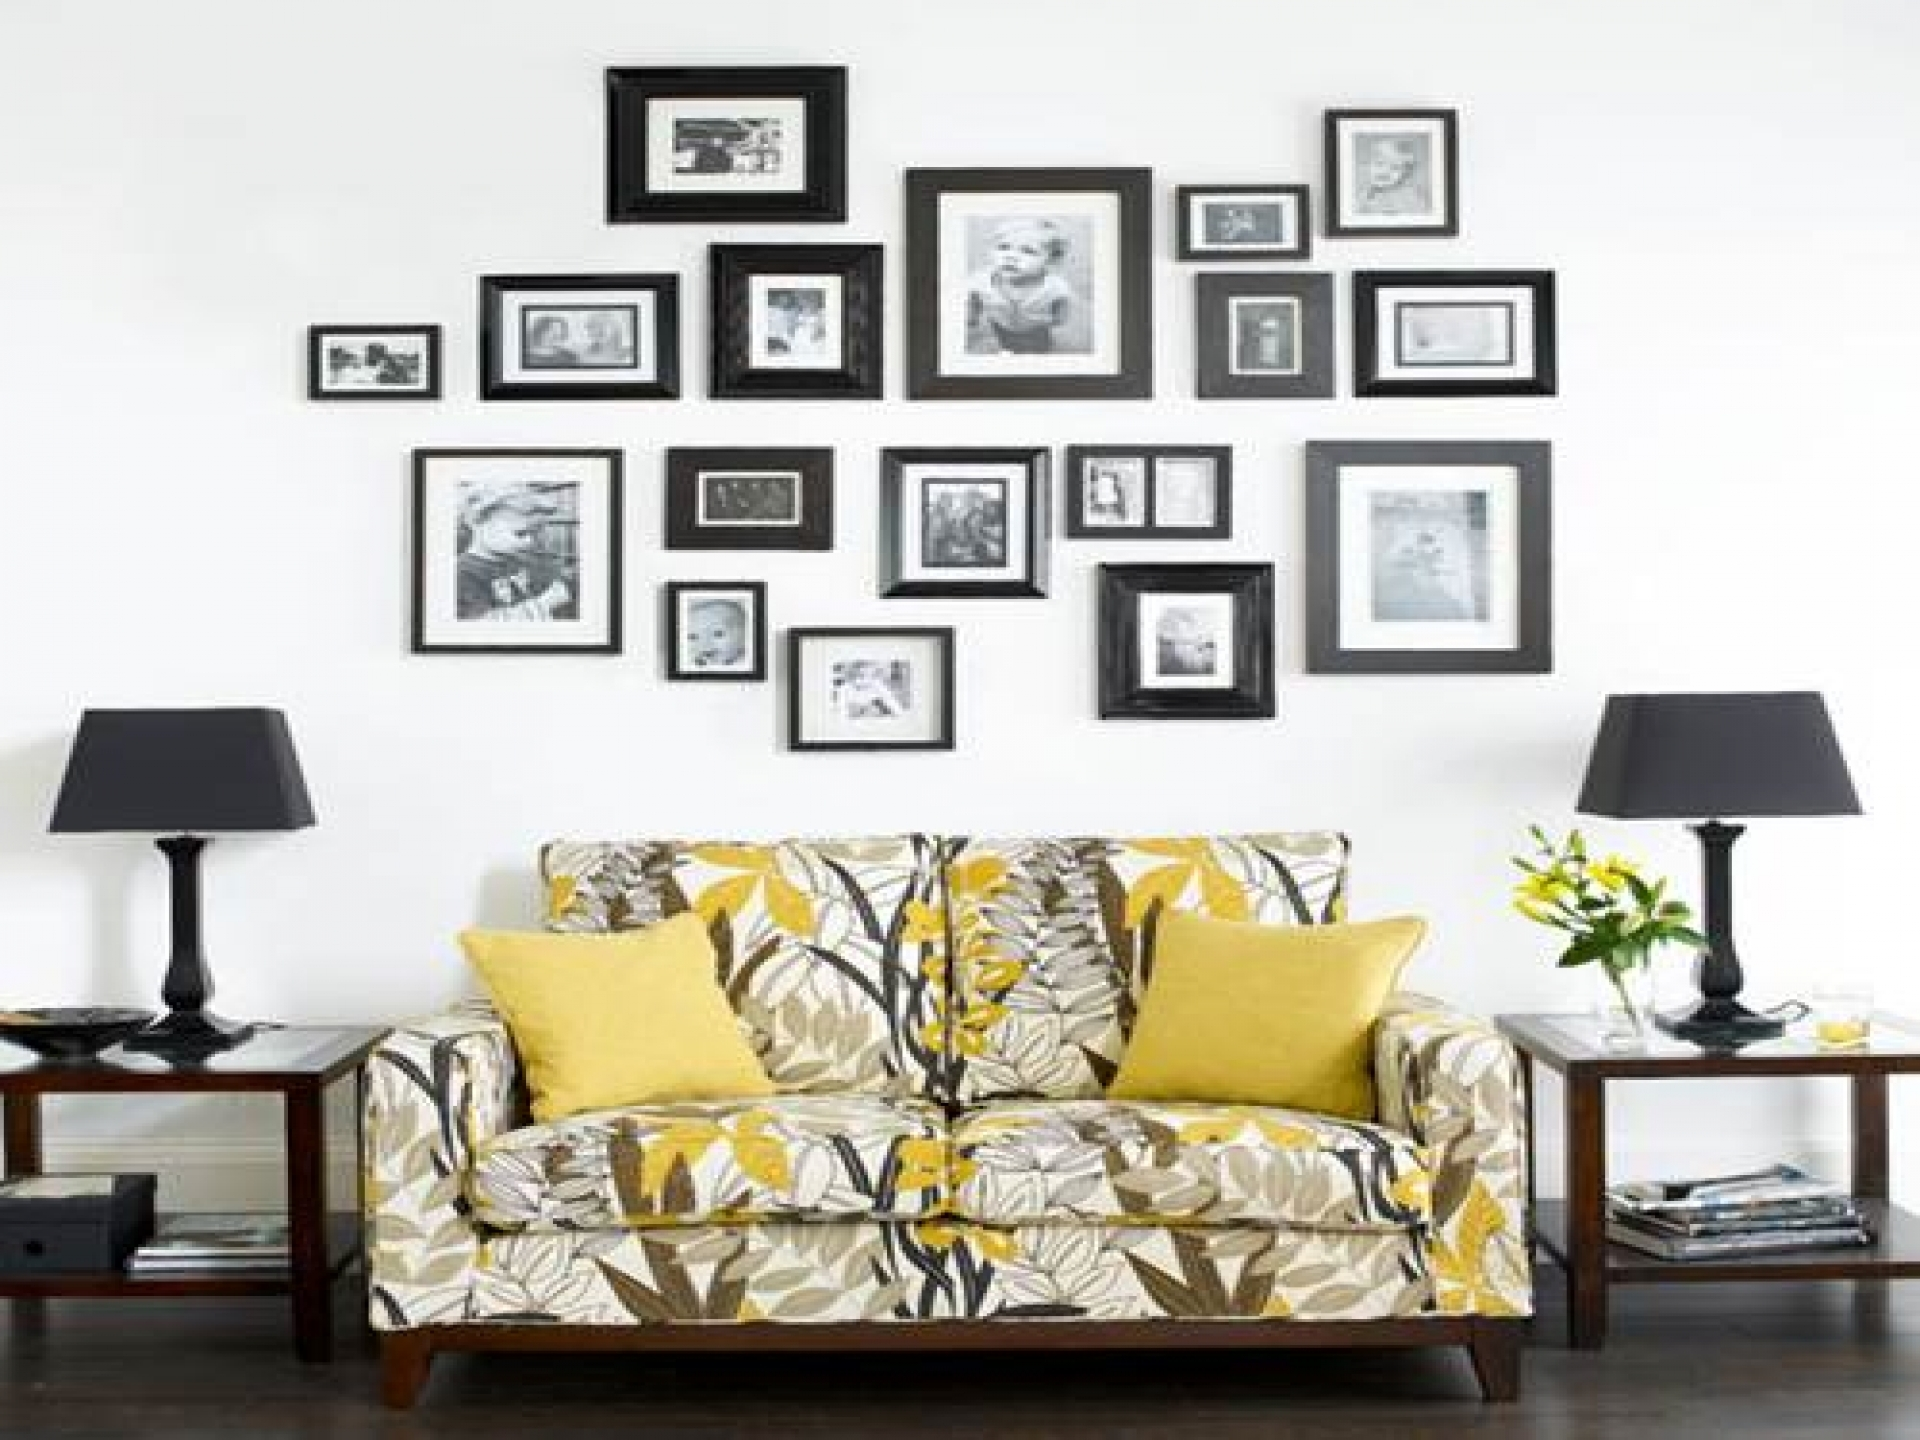 popular items for living room wall art | design pics